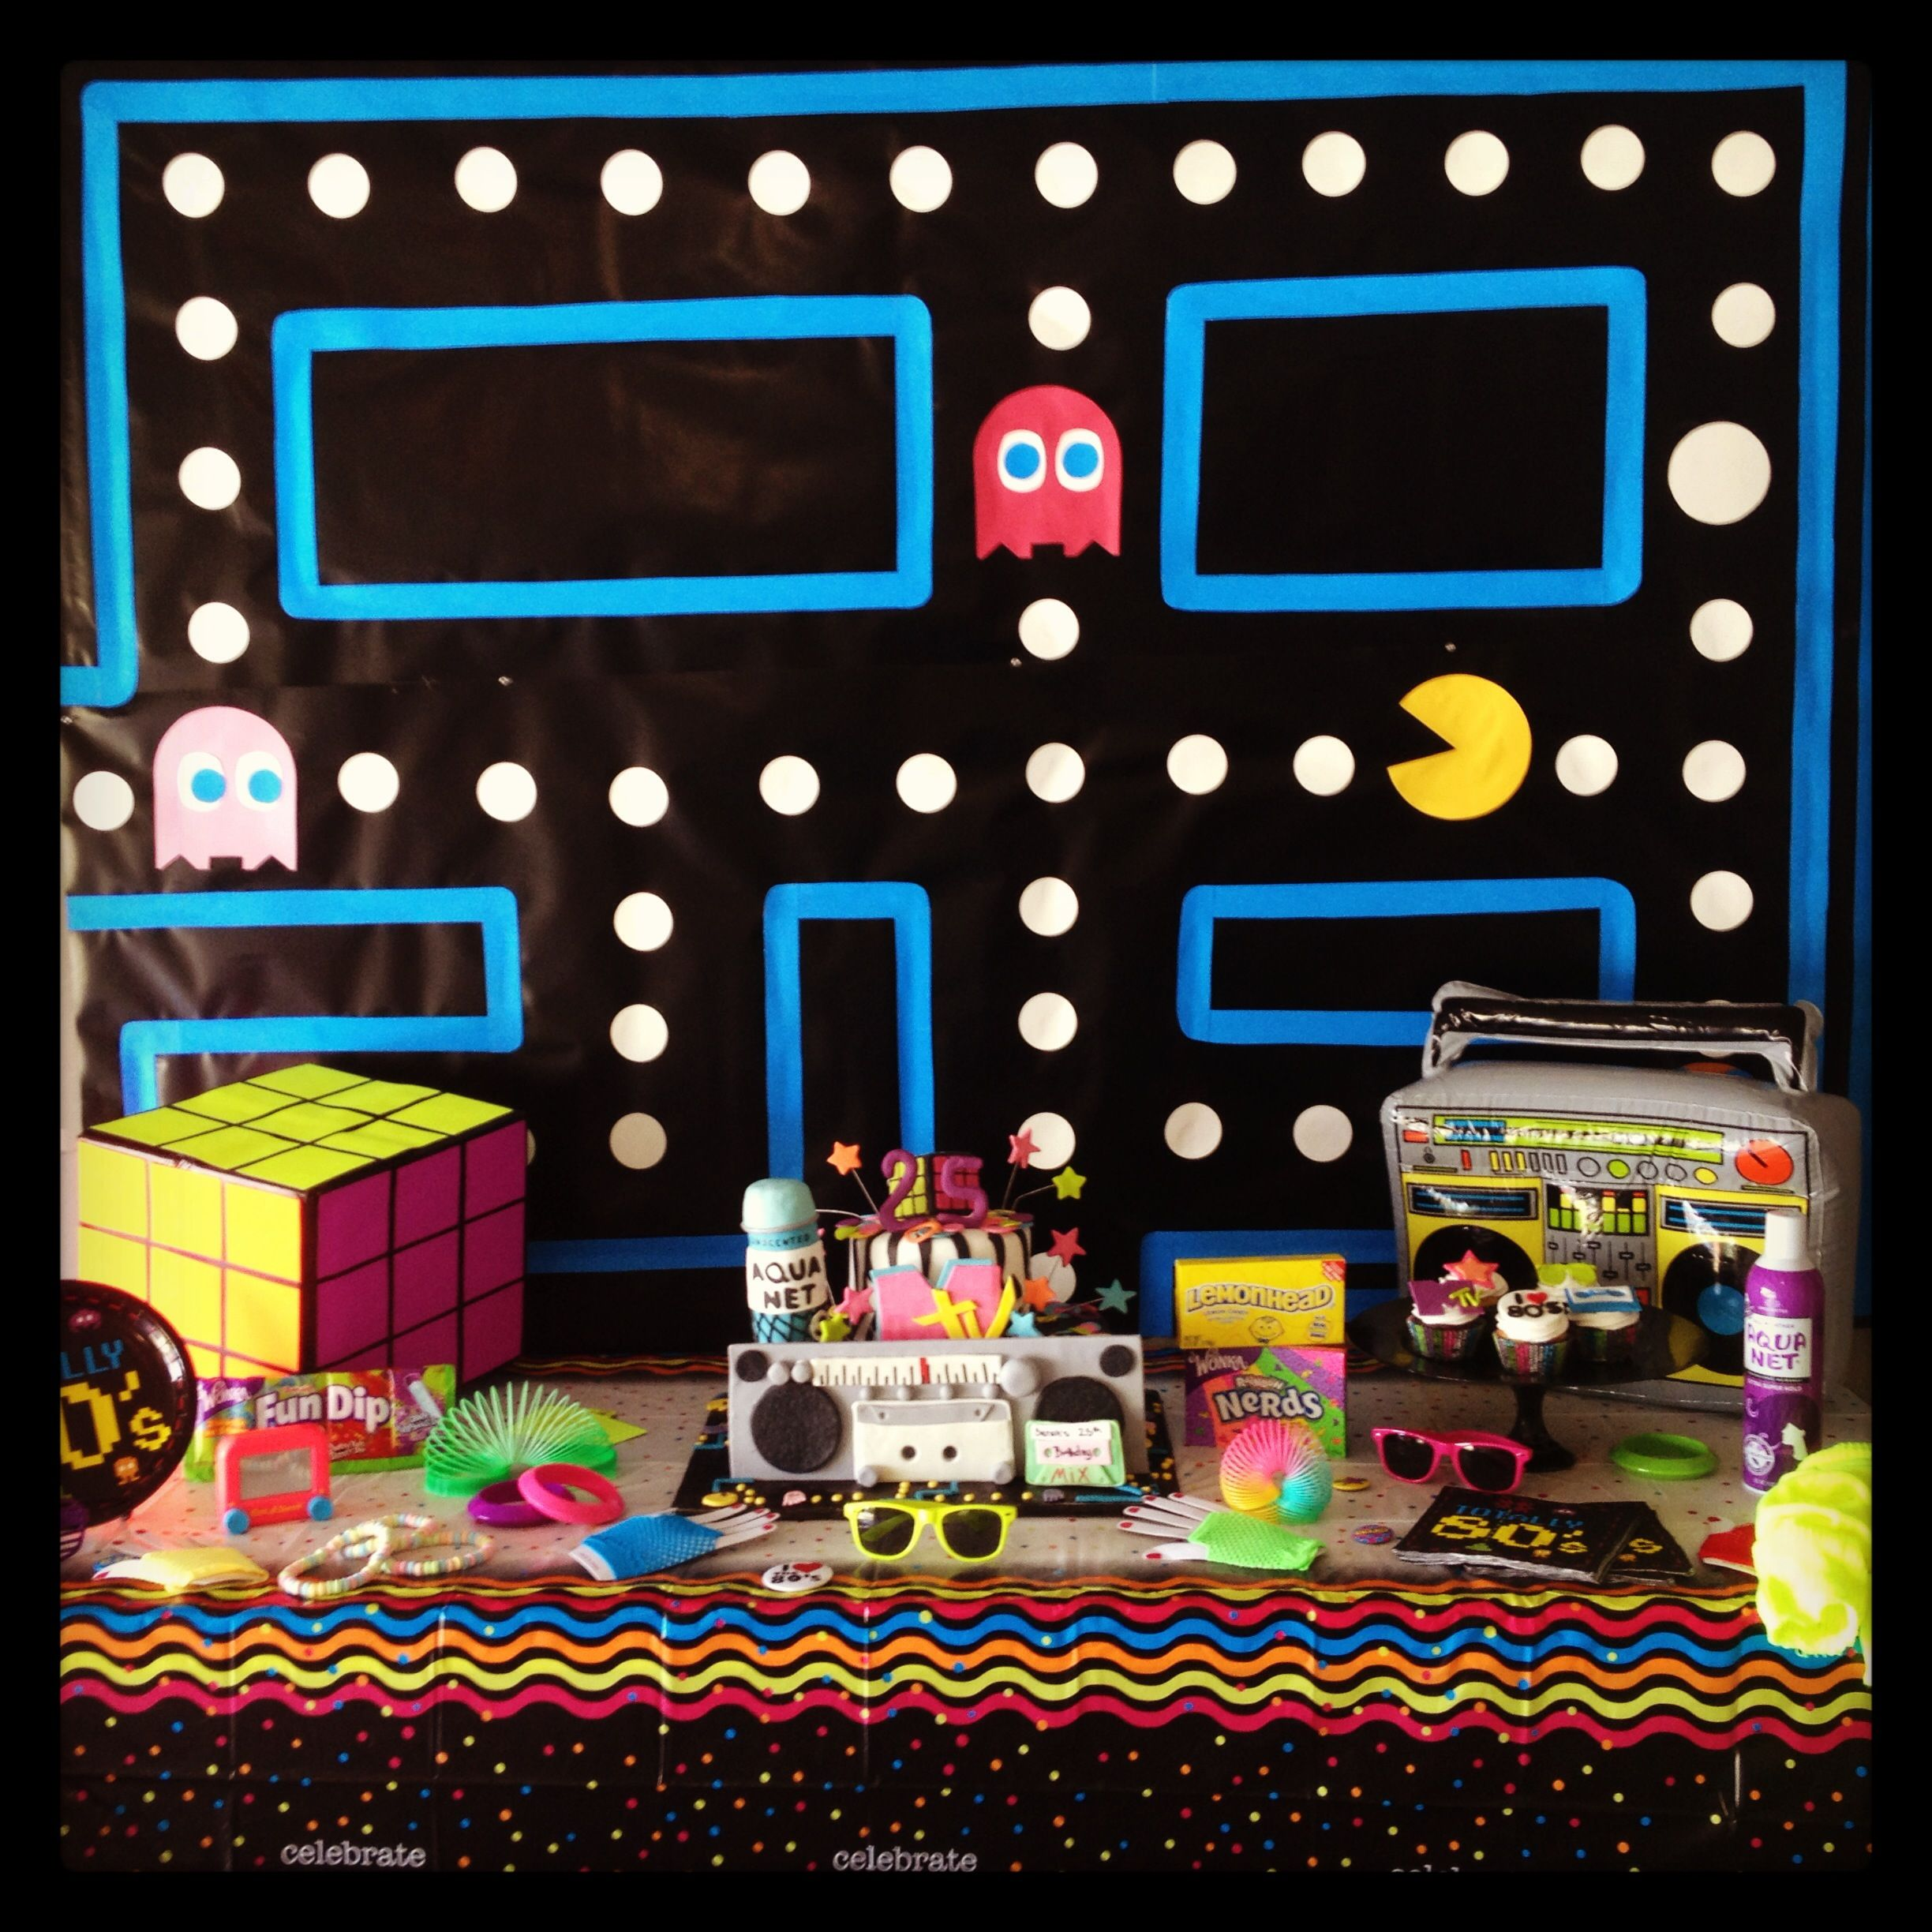 Totally rad 80 39 s party table pacman background rubic for 80 party decoration ideas